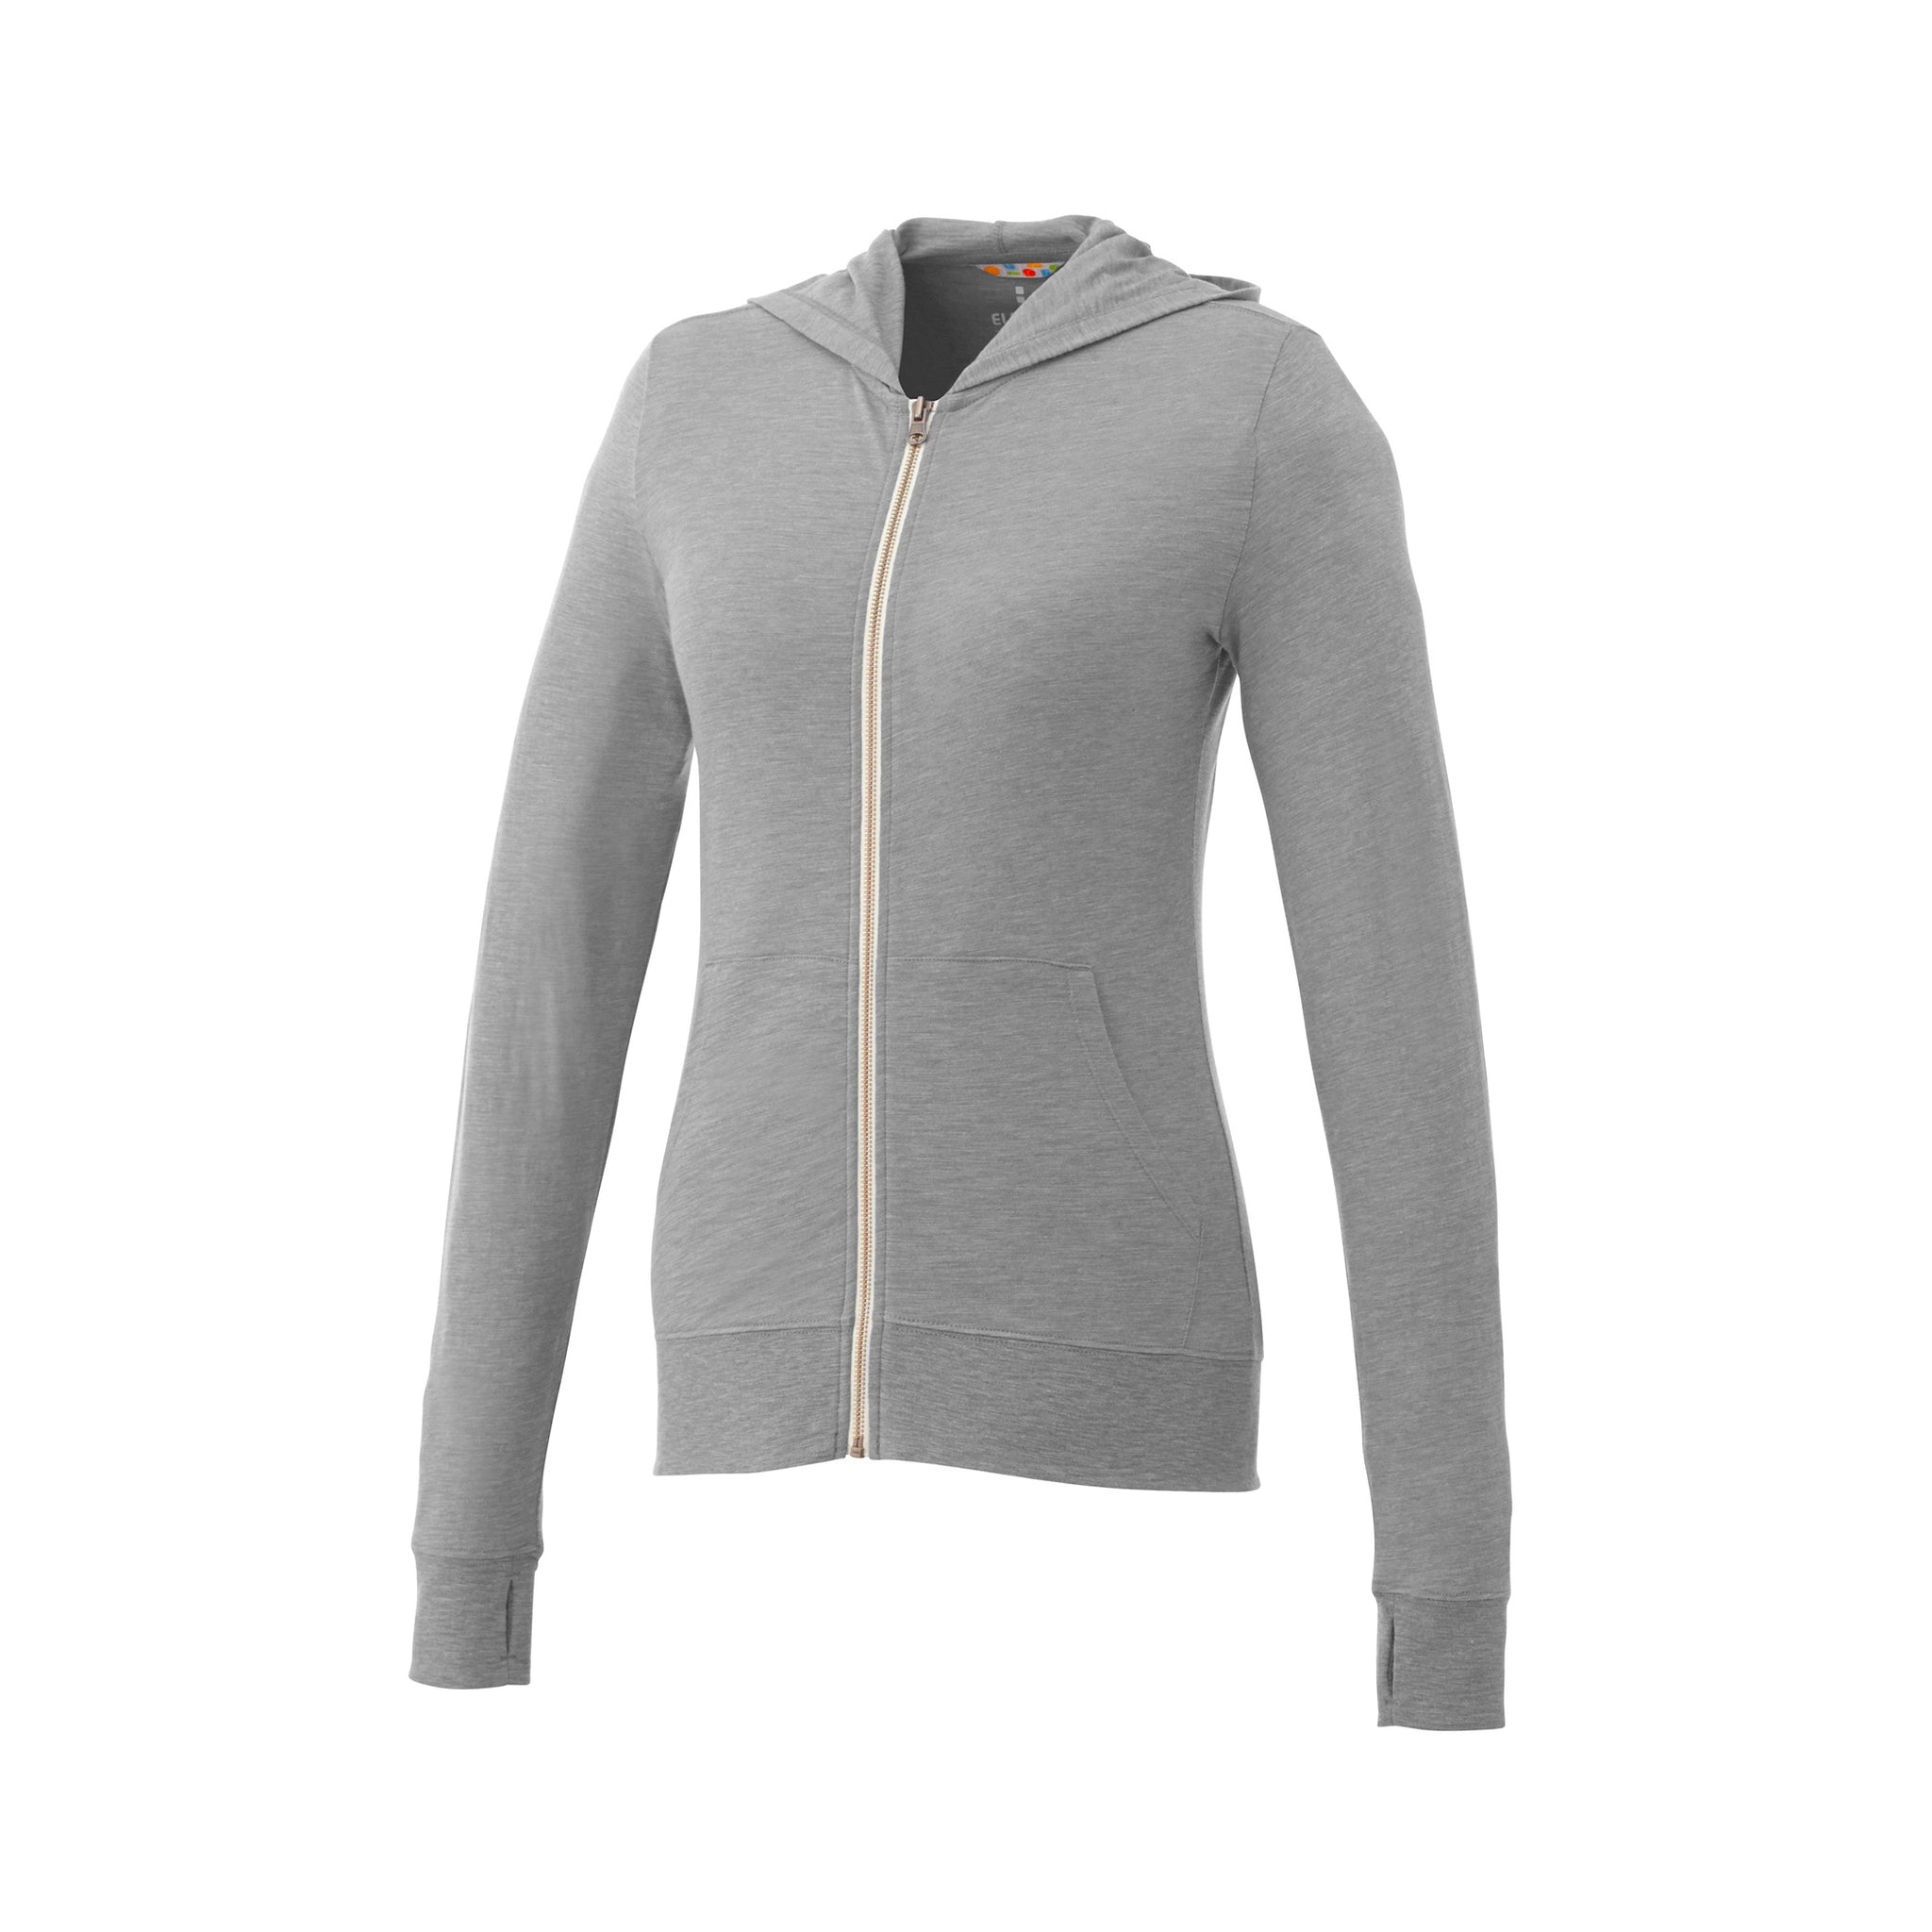 TRIMARK LADIES GARNER KNIT FULL ZIP HOODY